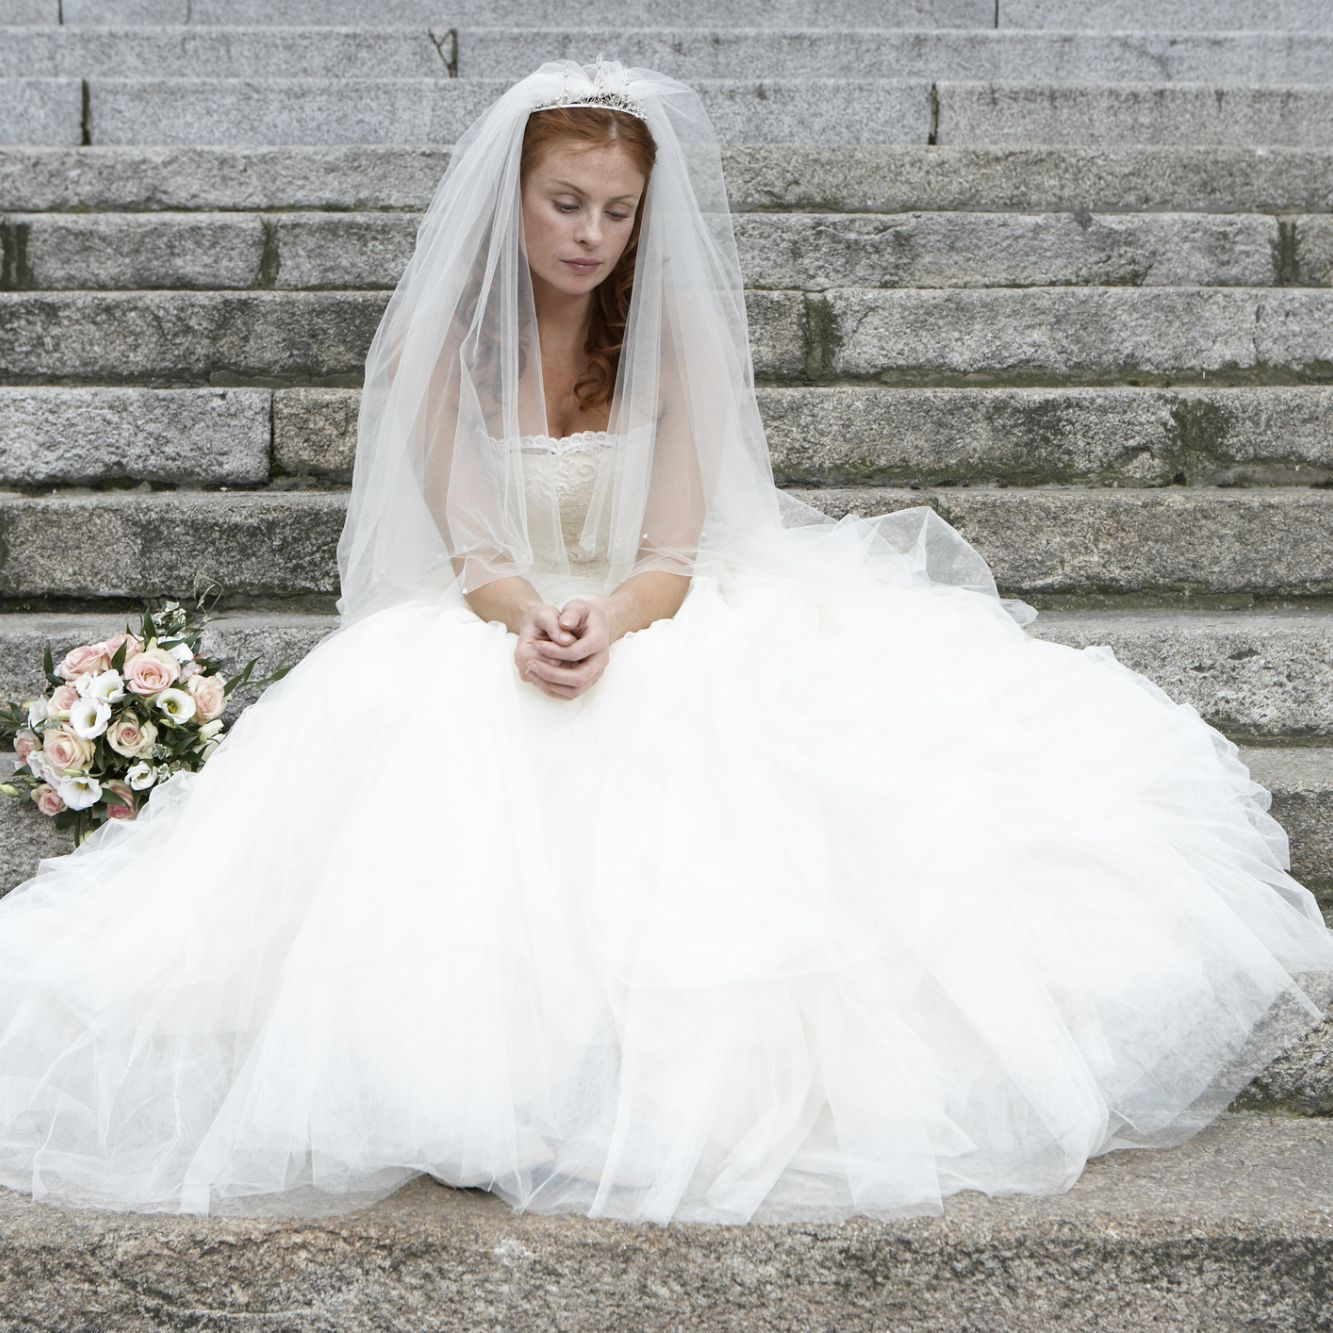 Coping With Social Anxiety When You Are Getting Married